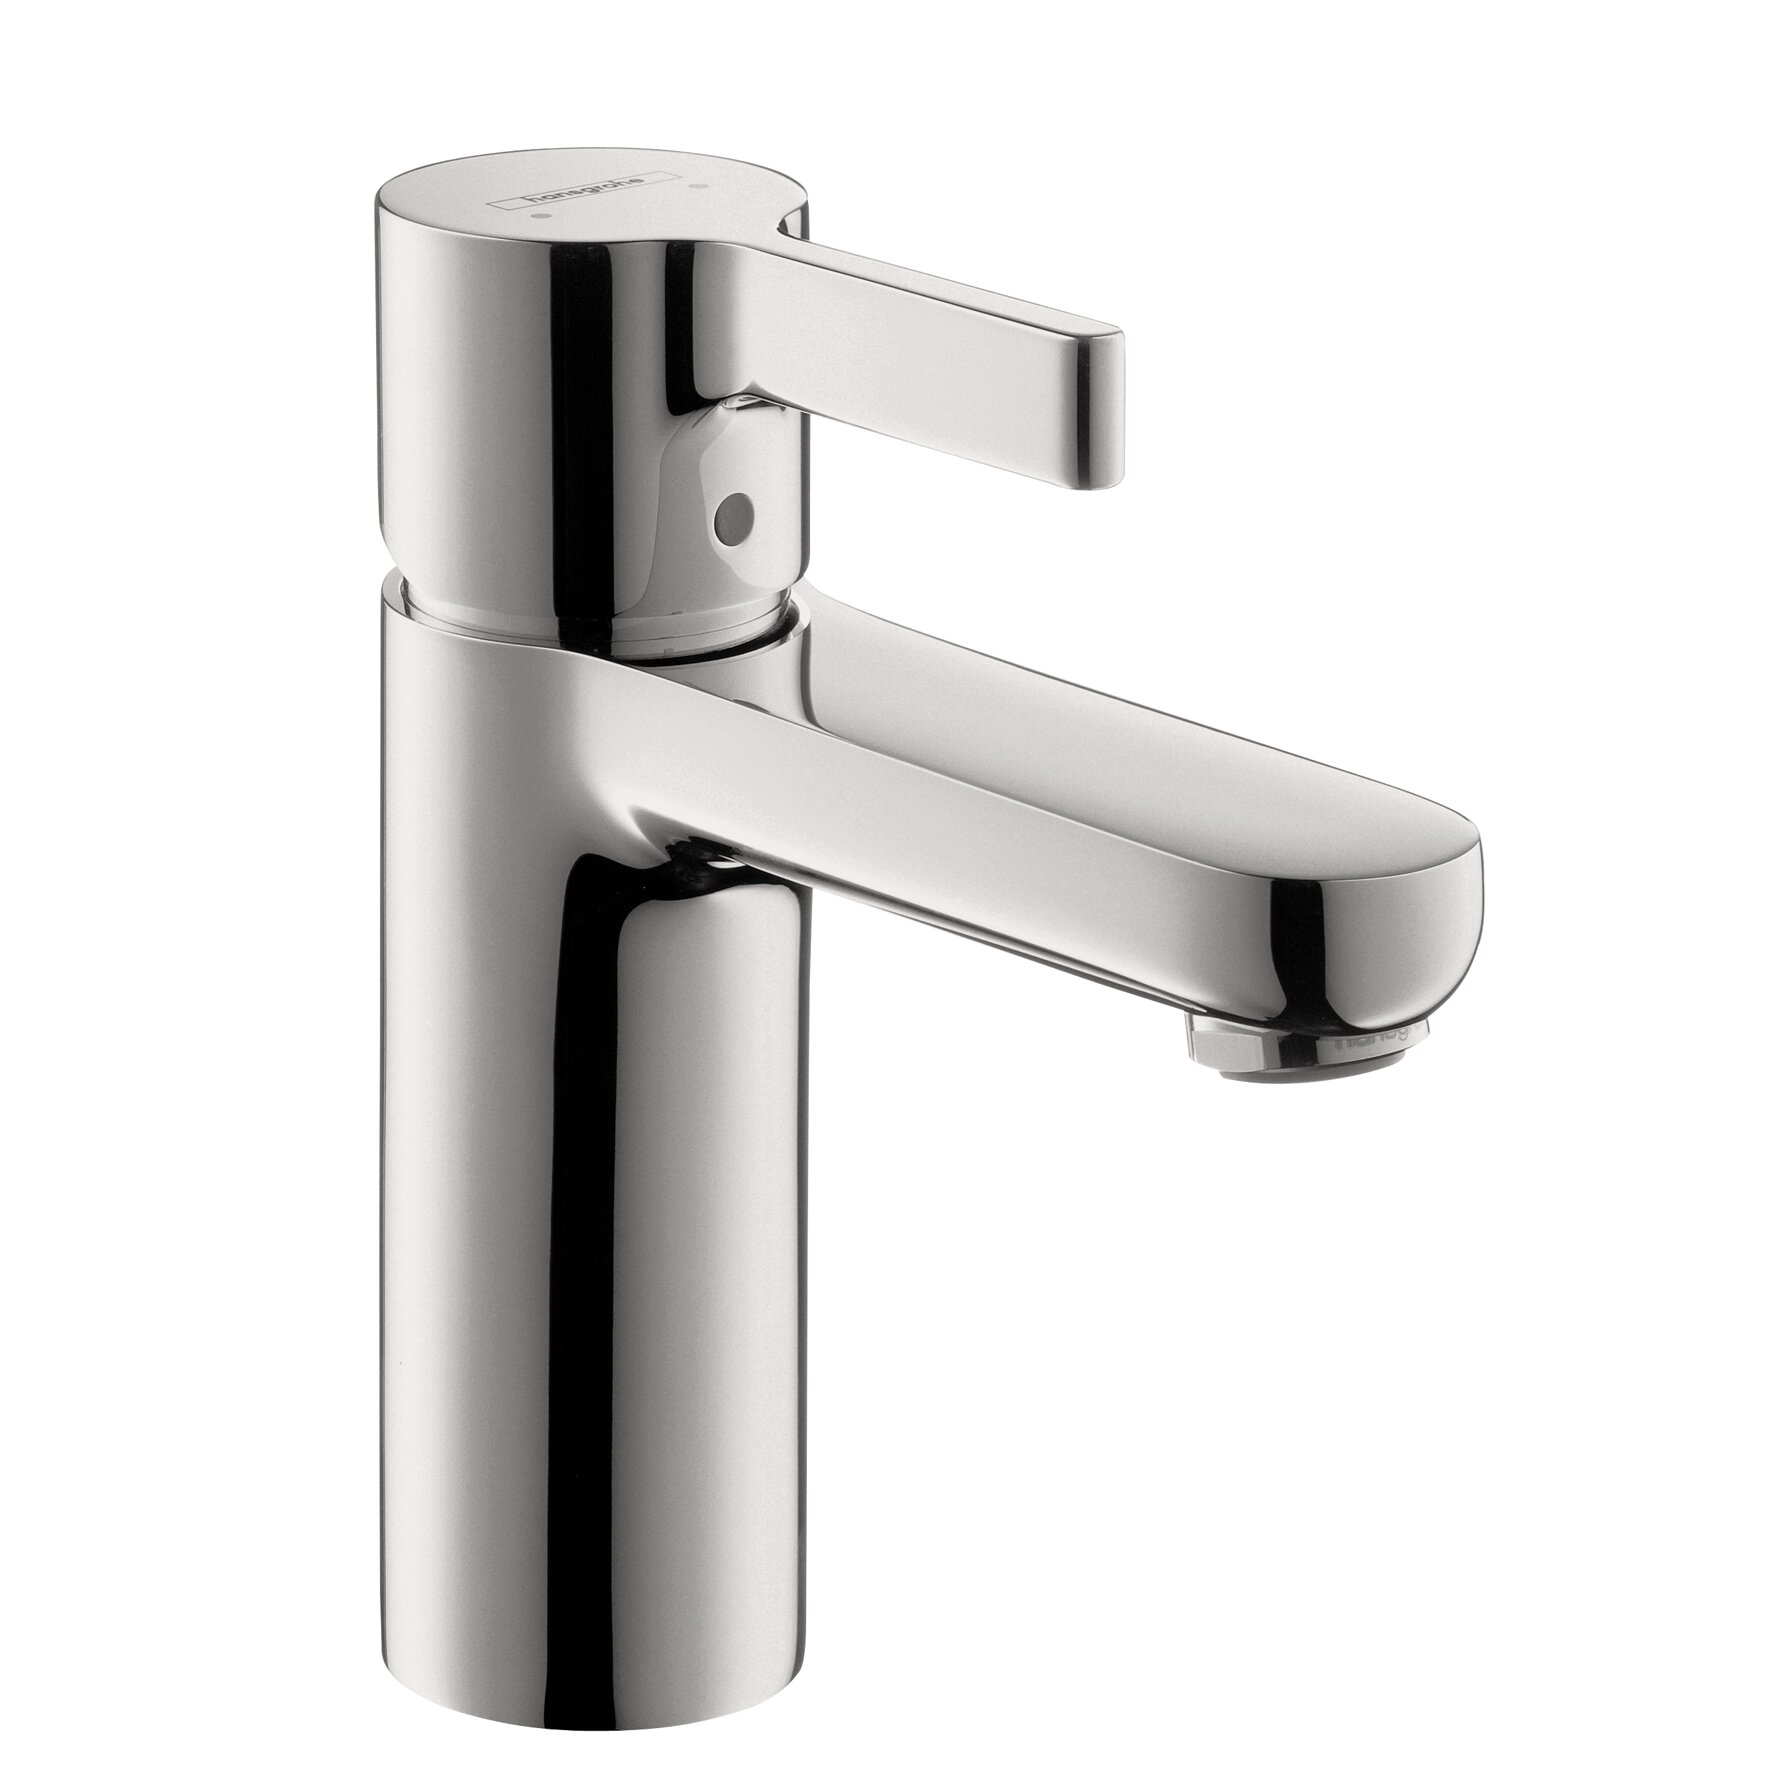 Hansgrohe metris single handle single hole standard - Hansgrohe shower handle ...